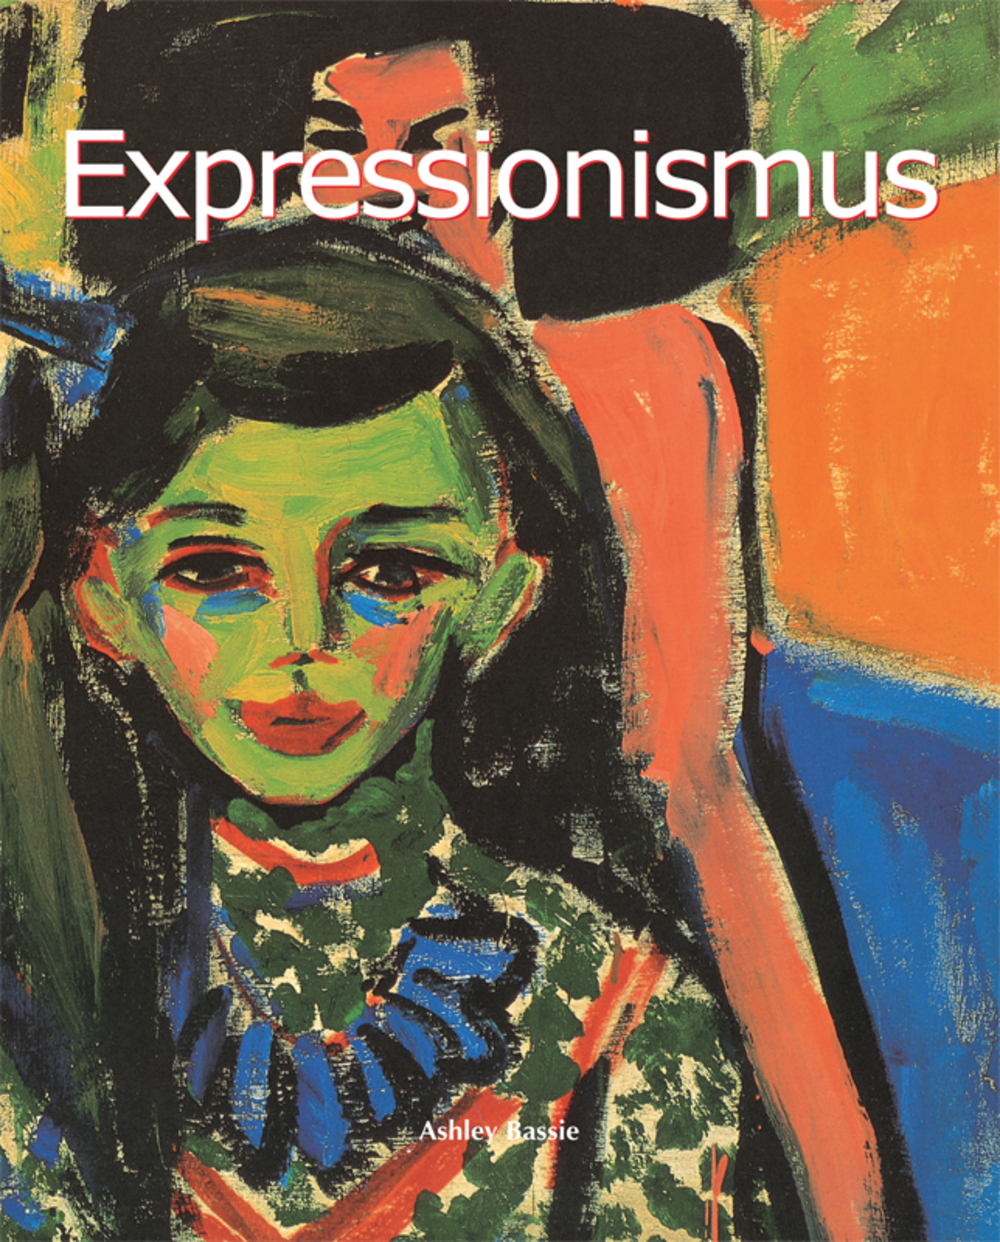 Expressionismus